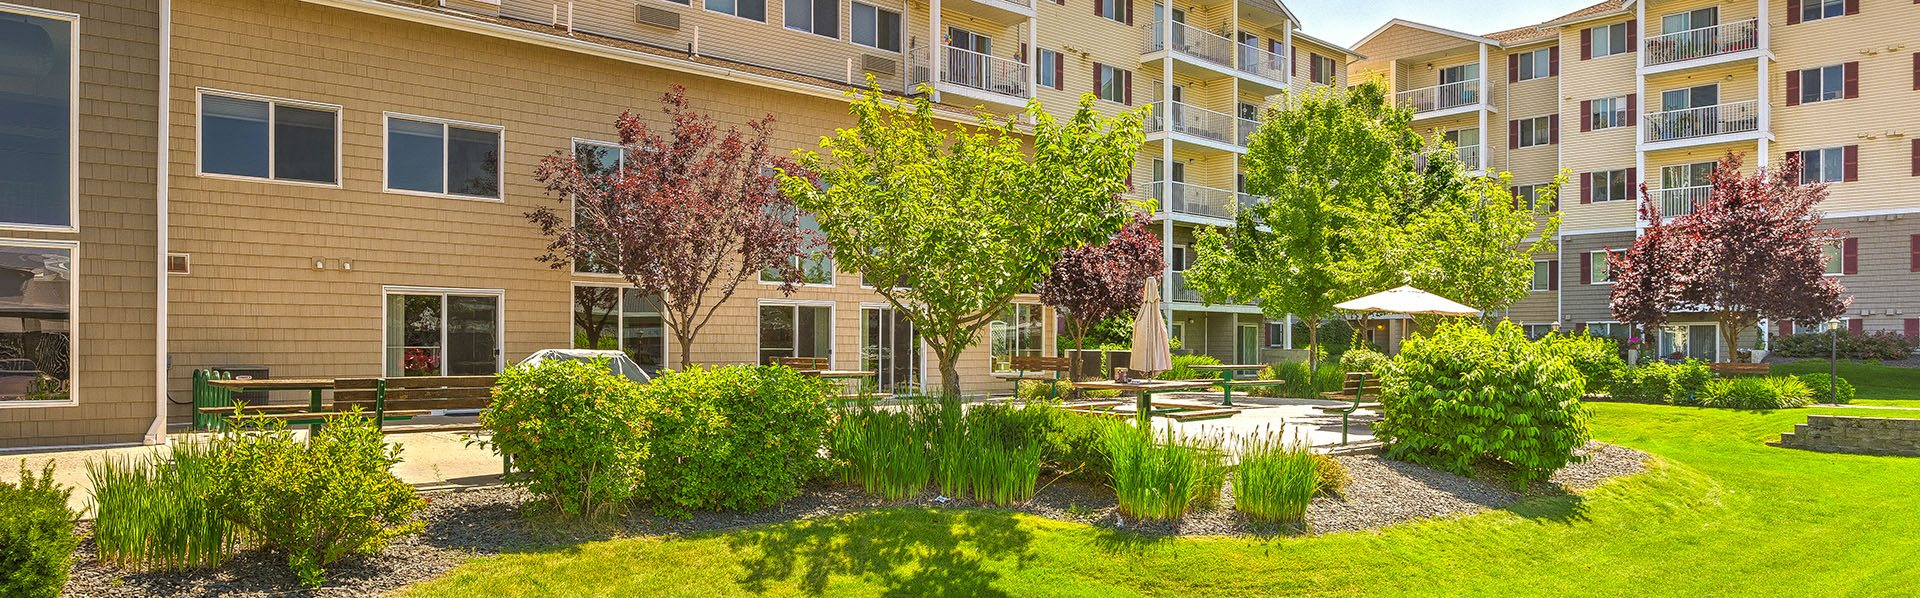 Community Building Vintage at Spokane Senior Apartments  l Spokane Washington Apts For Rent